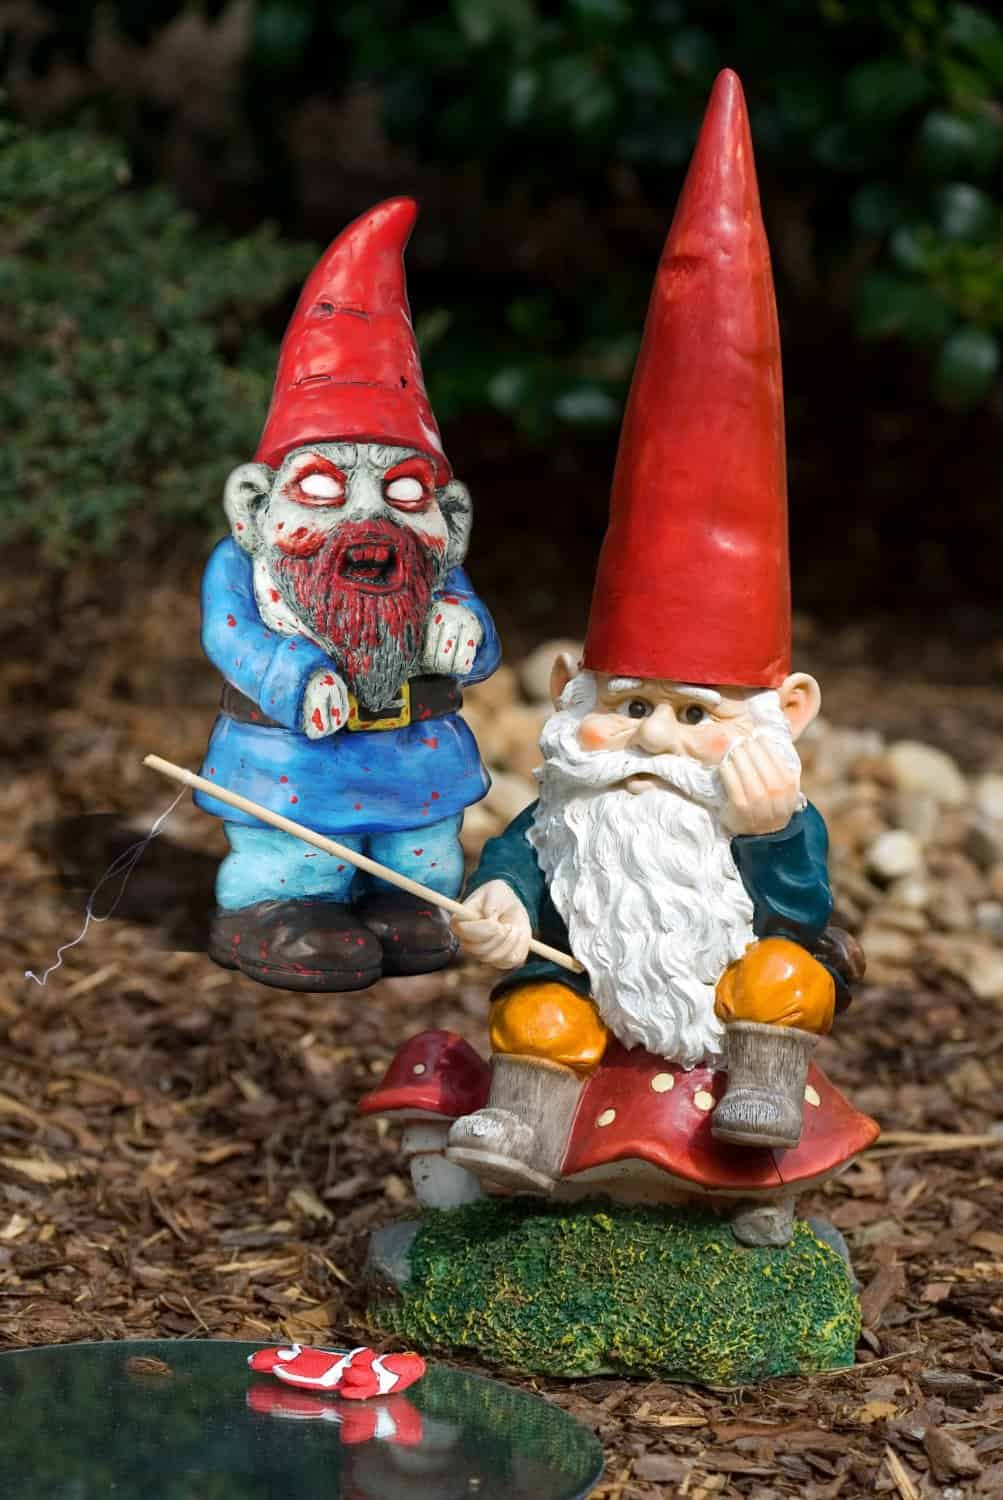 Thumbs Up! Zombie Garden Gnome REady to Bite